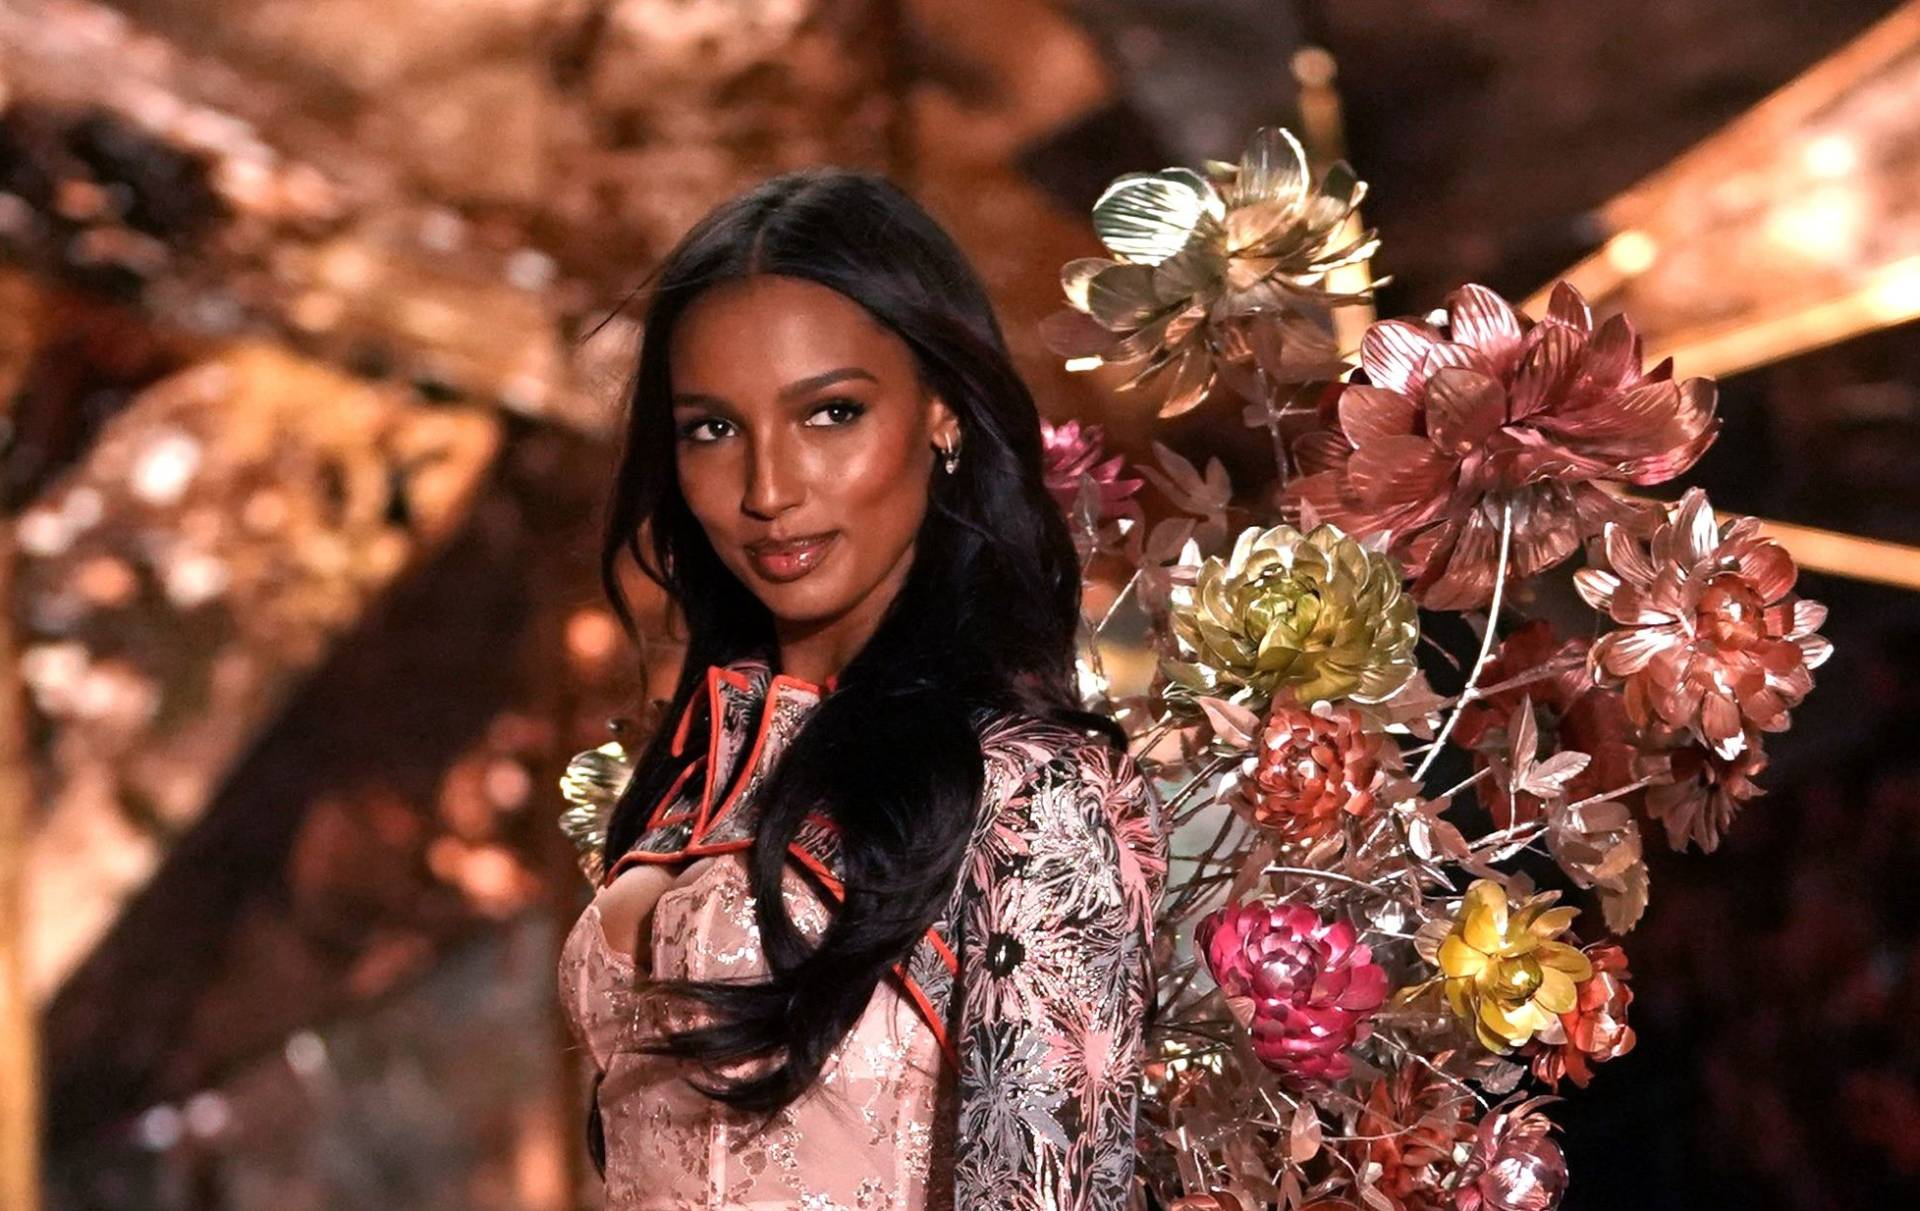 Victoria's Secret finally called it quits this year and cancelled its annual runway show.